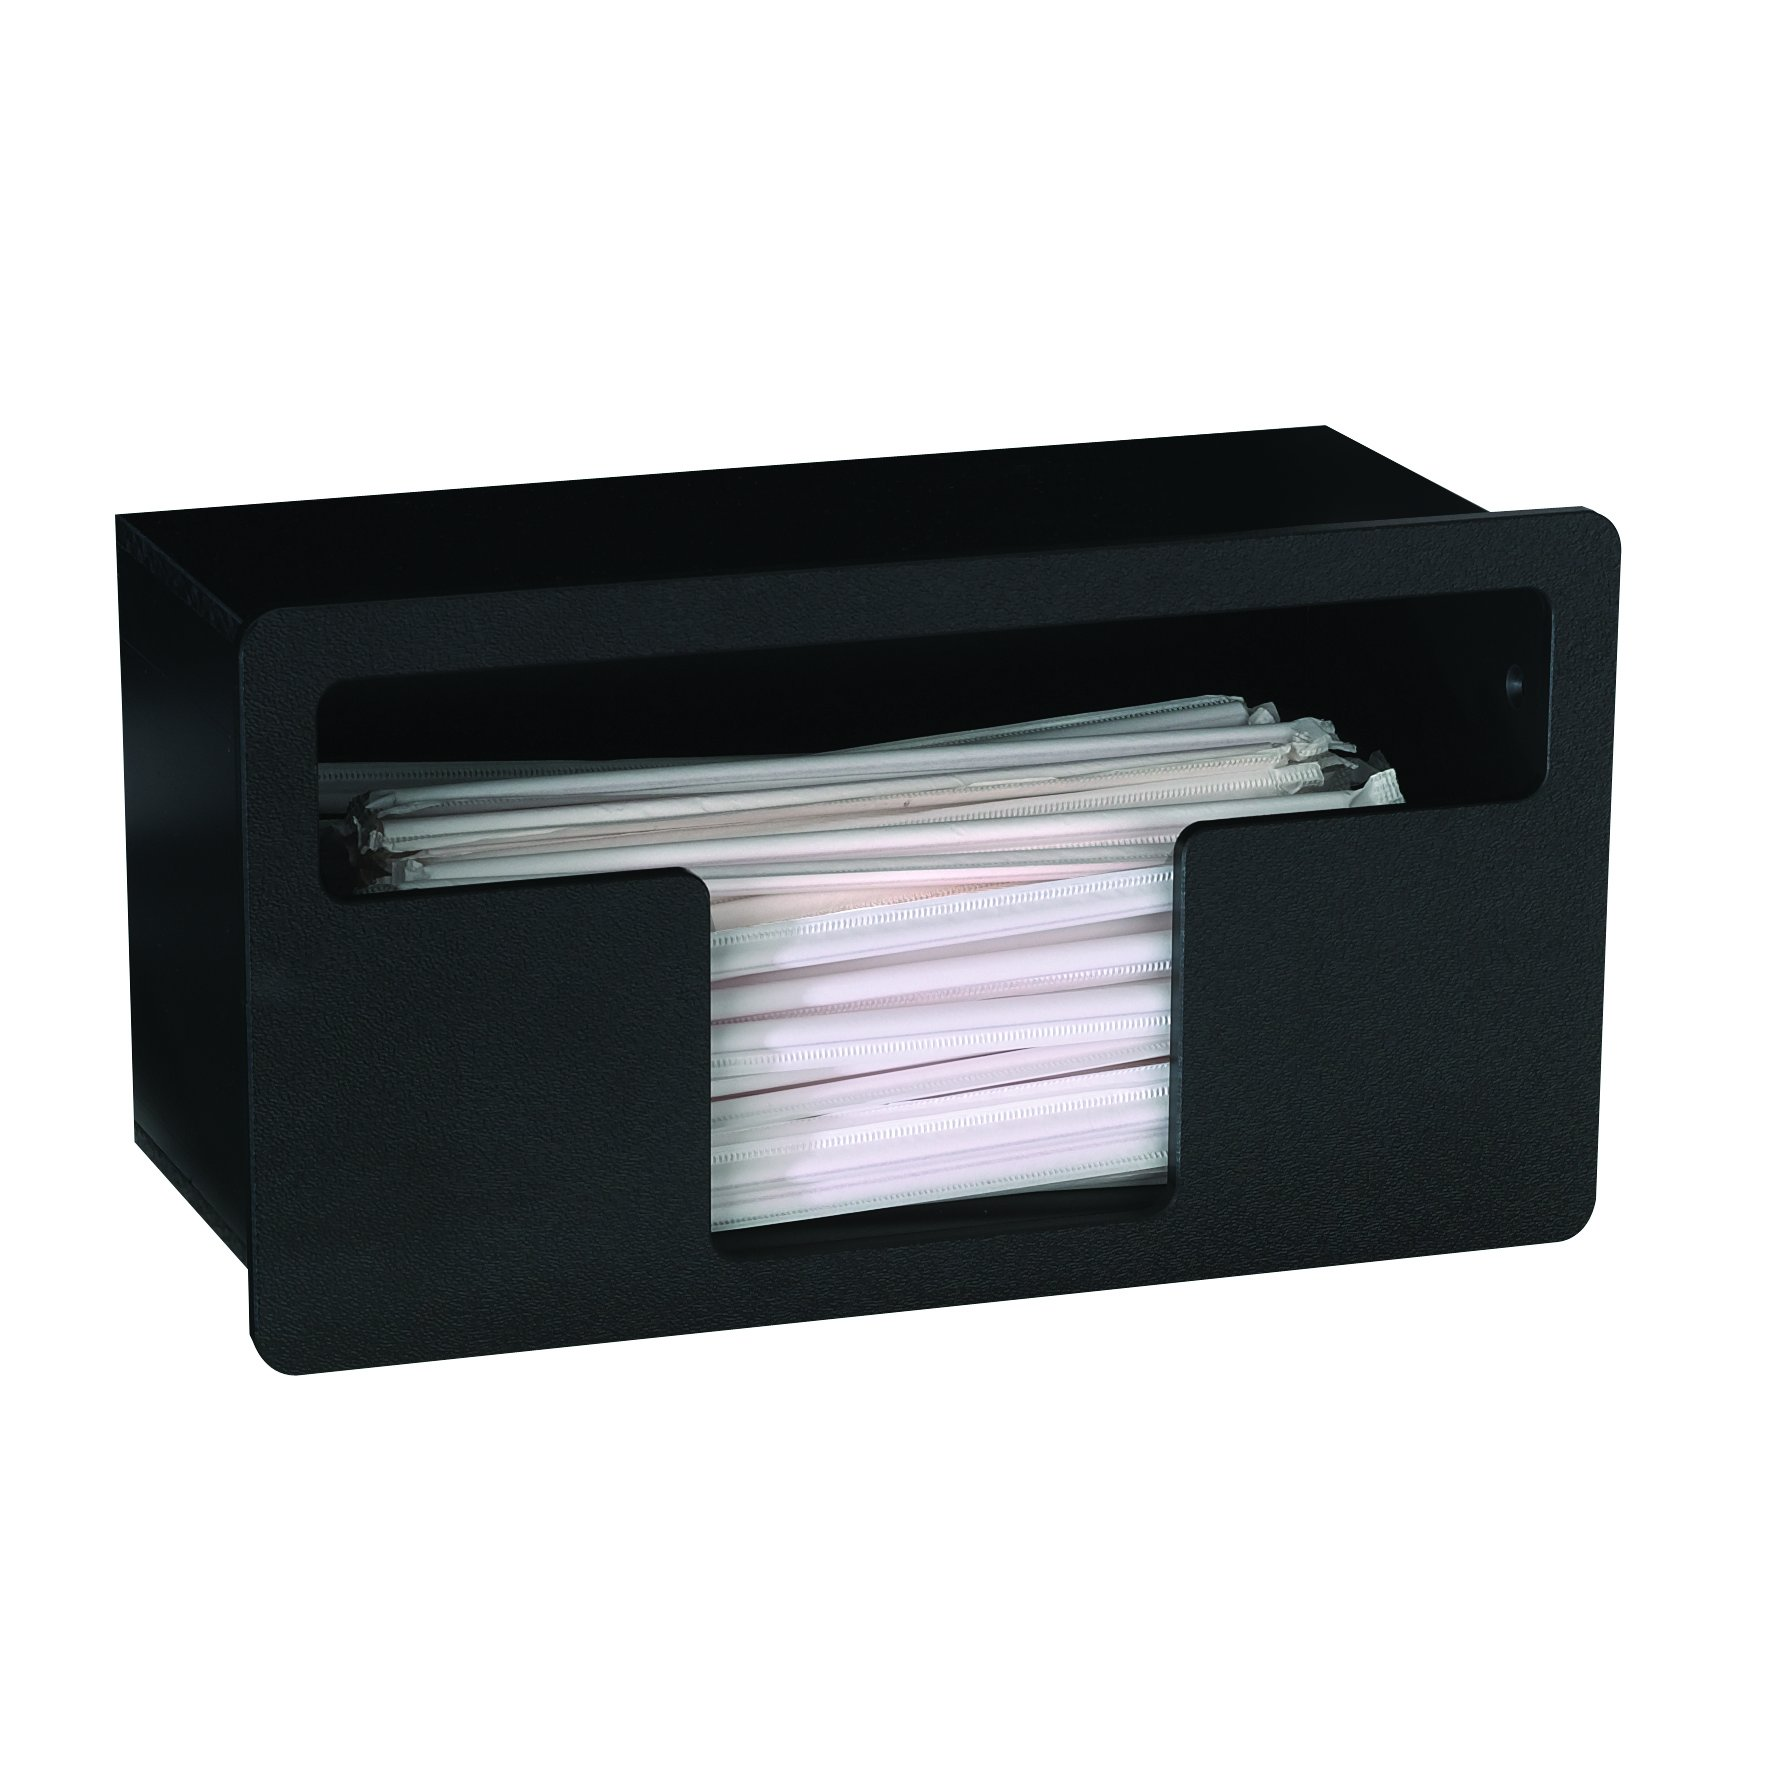 Dispense-Rite FMTS-1BT Built-in Wrapped Straw Organizer by DISPENSE-RITE